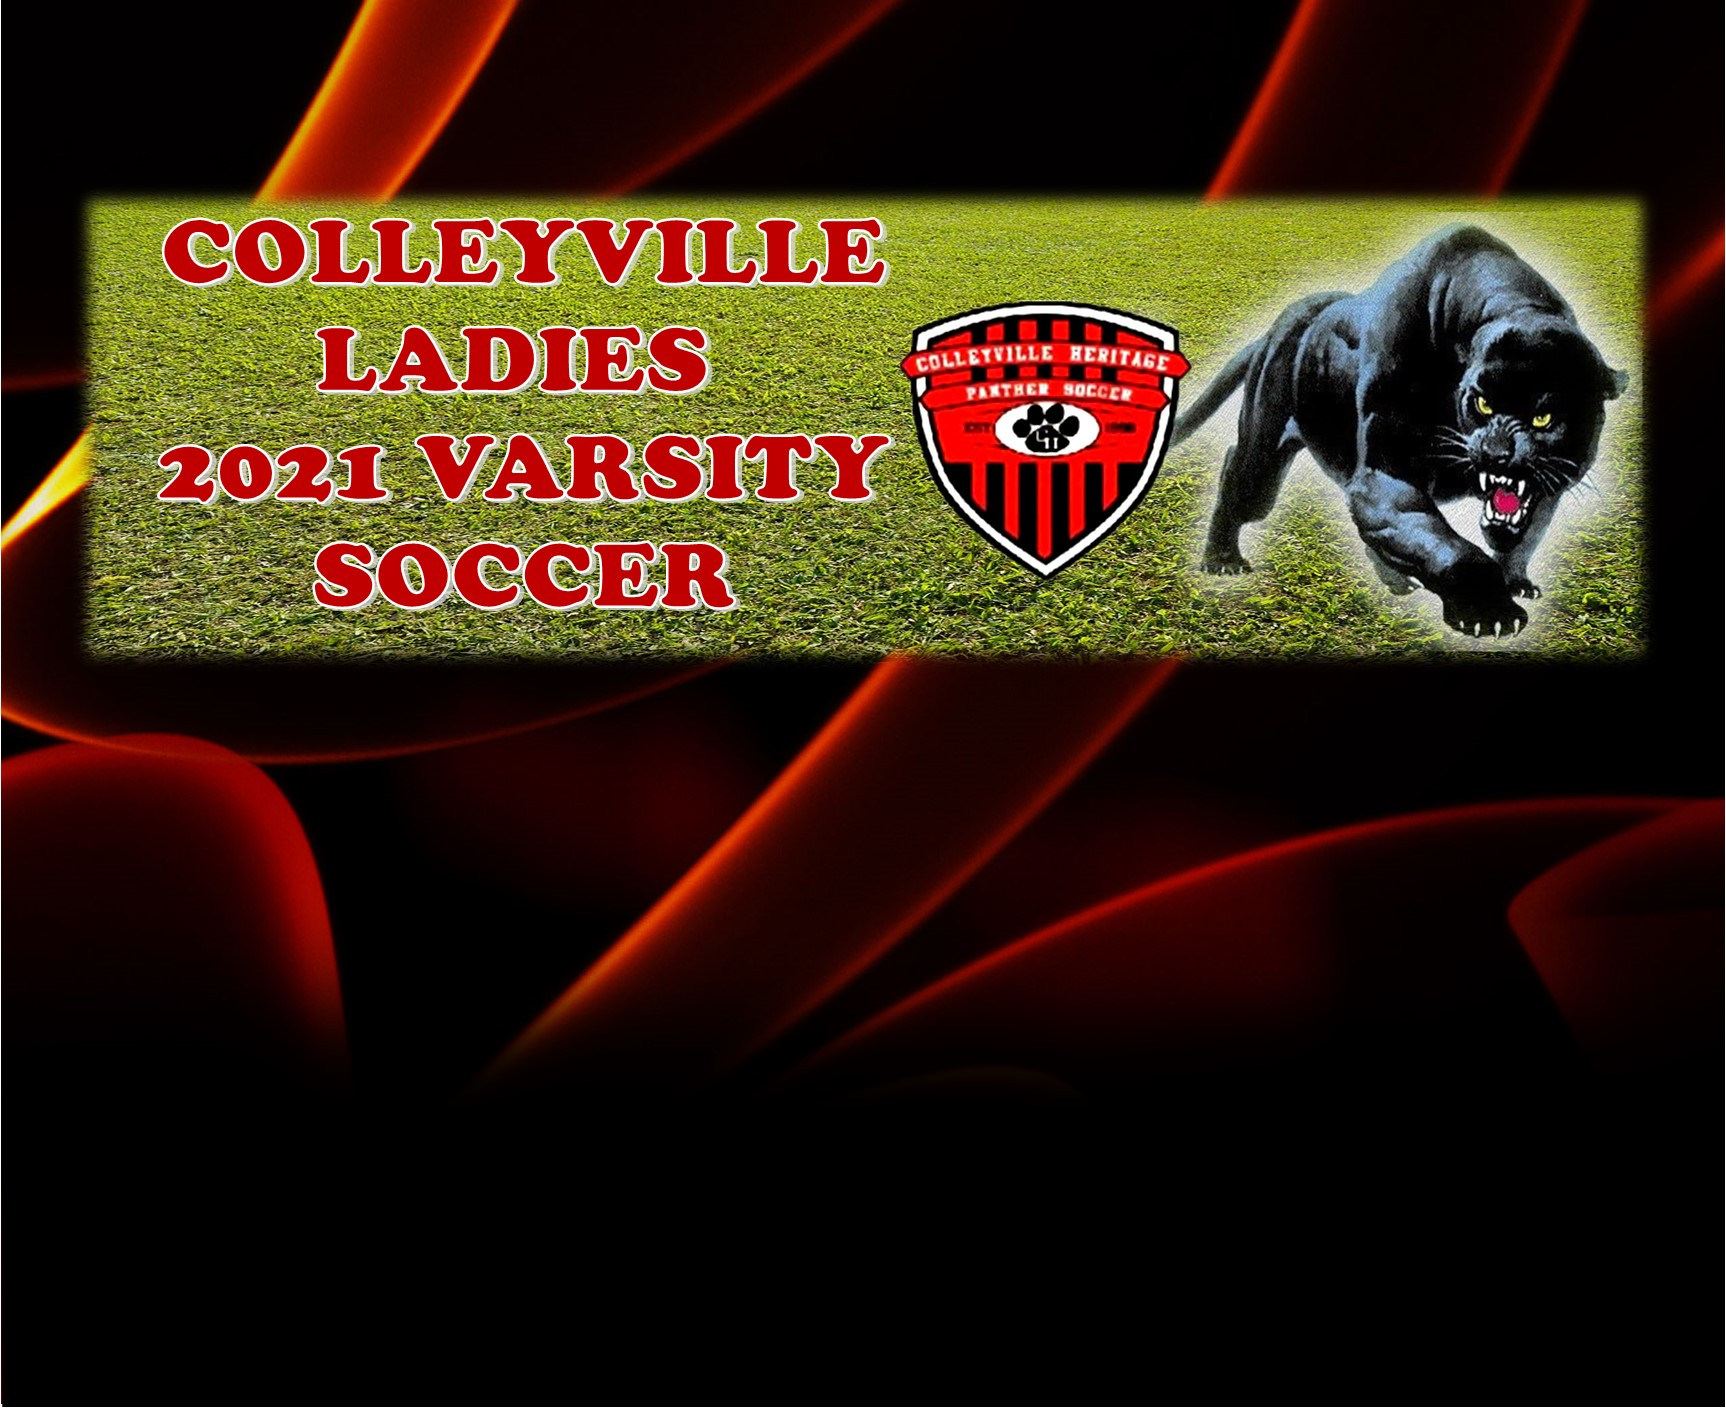 GCISD Ladies Soccer: Colleyville Panthers Fly Past the Wichita Falls Coyotes 4-0